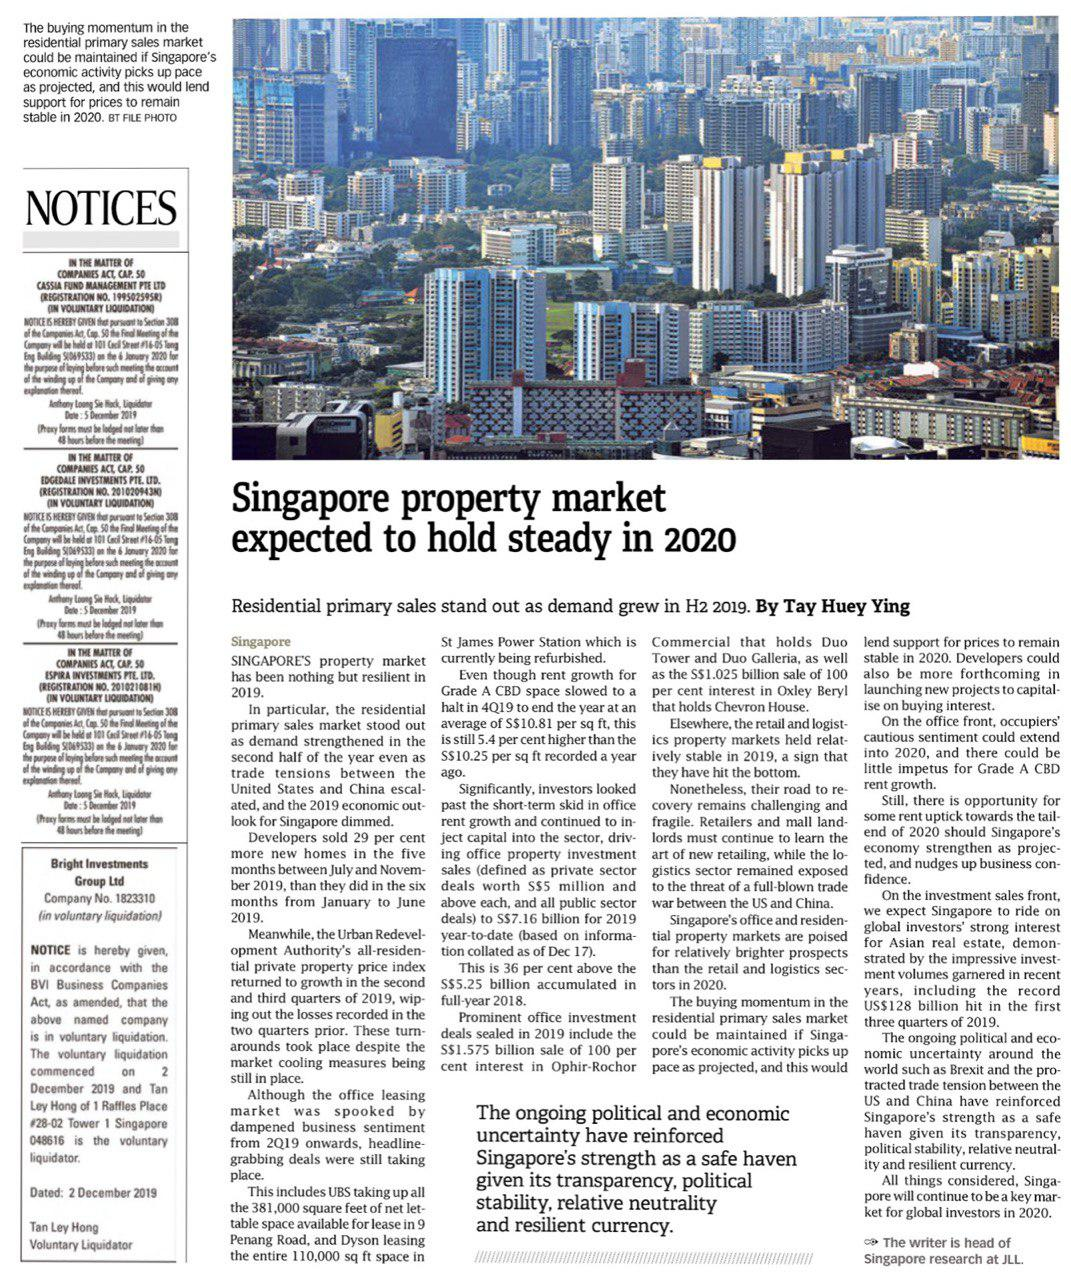 singapore-property-market-expected-to-hold-steady-in-2020